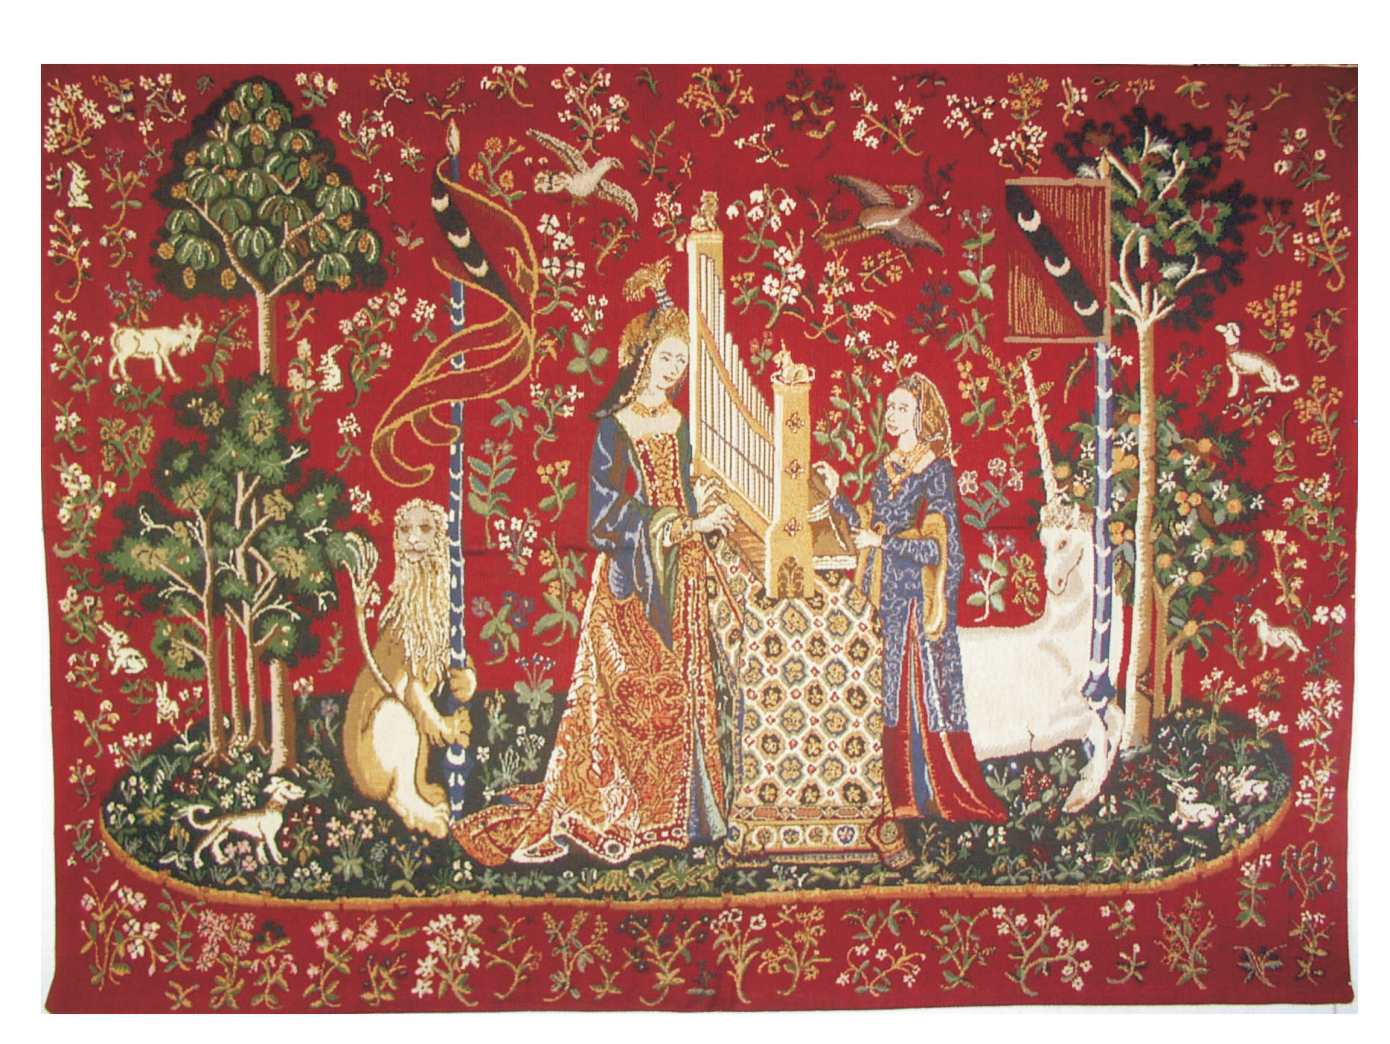 tapestry wall hangings the lady and the organ ii european tapestry wall hanging, h34 lrehooe